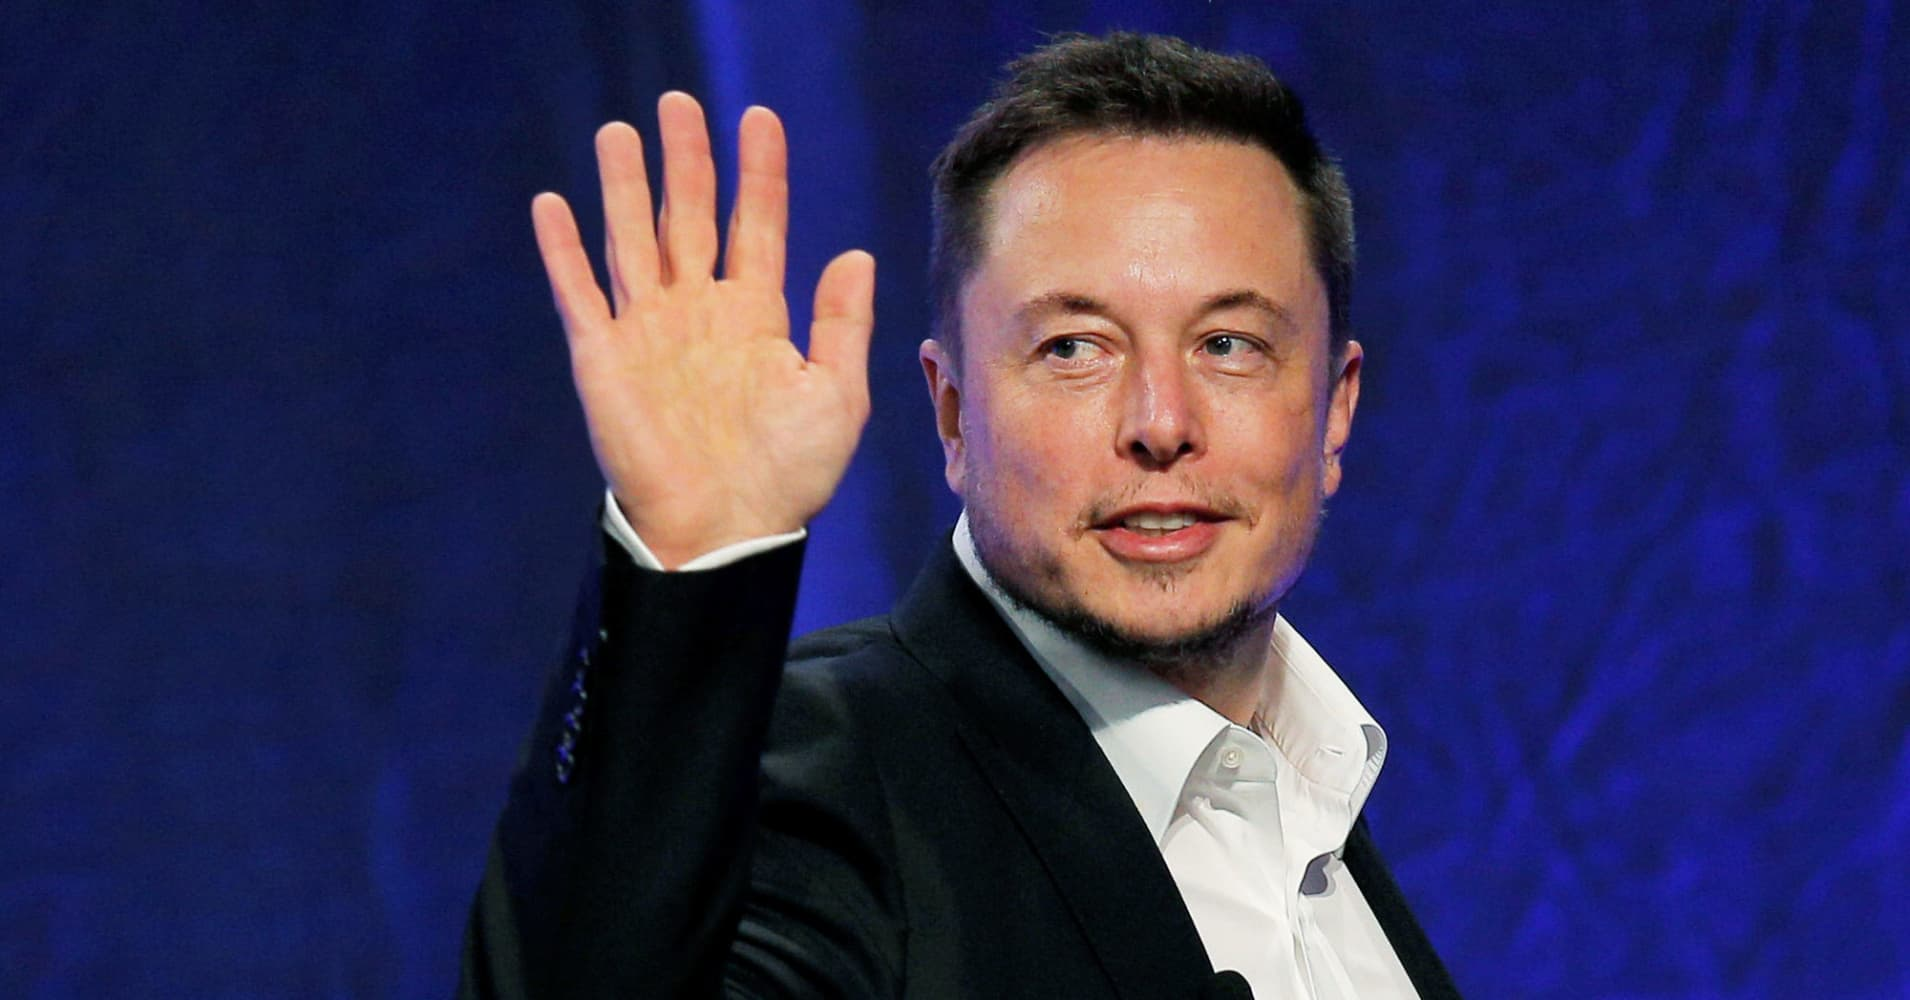 Billionaire Elon Musk responds to unhappy Tesla customer on a Friday night